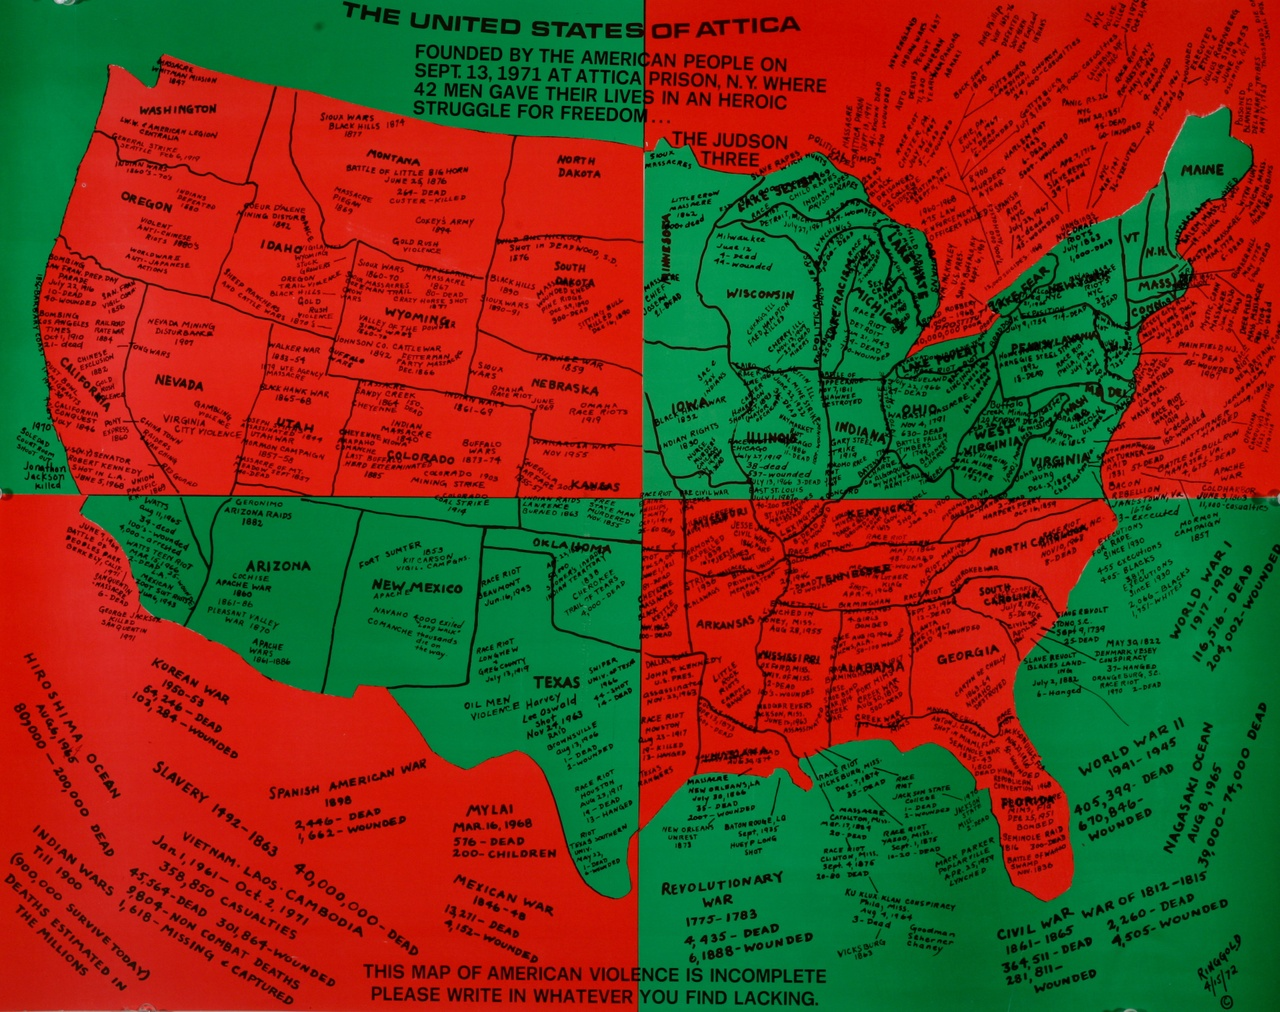 17. Faith Ringgold - US of Attica.jpg